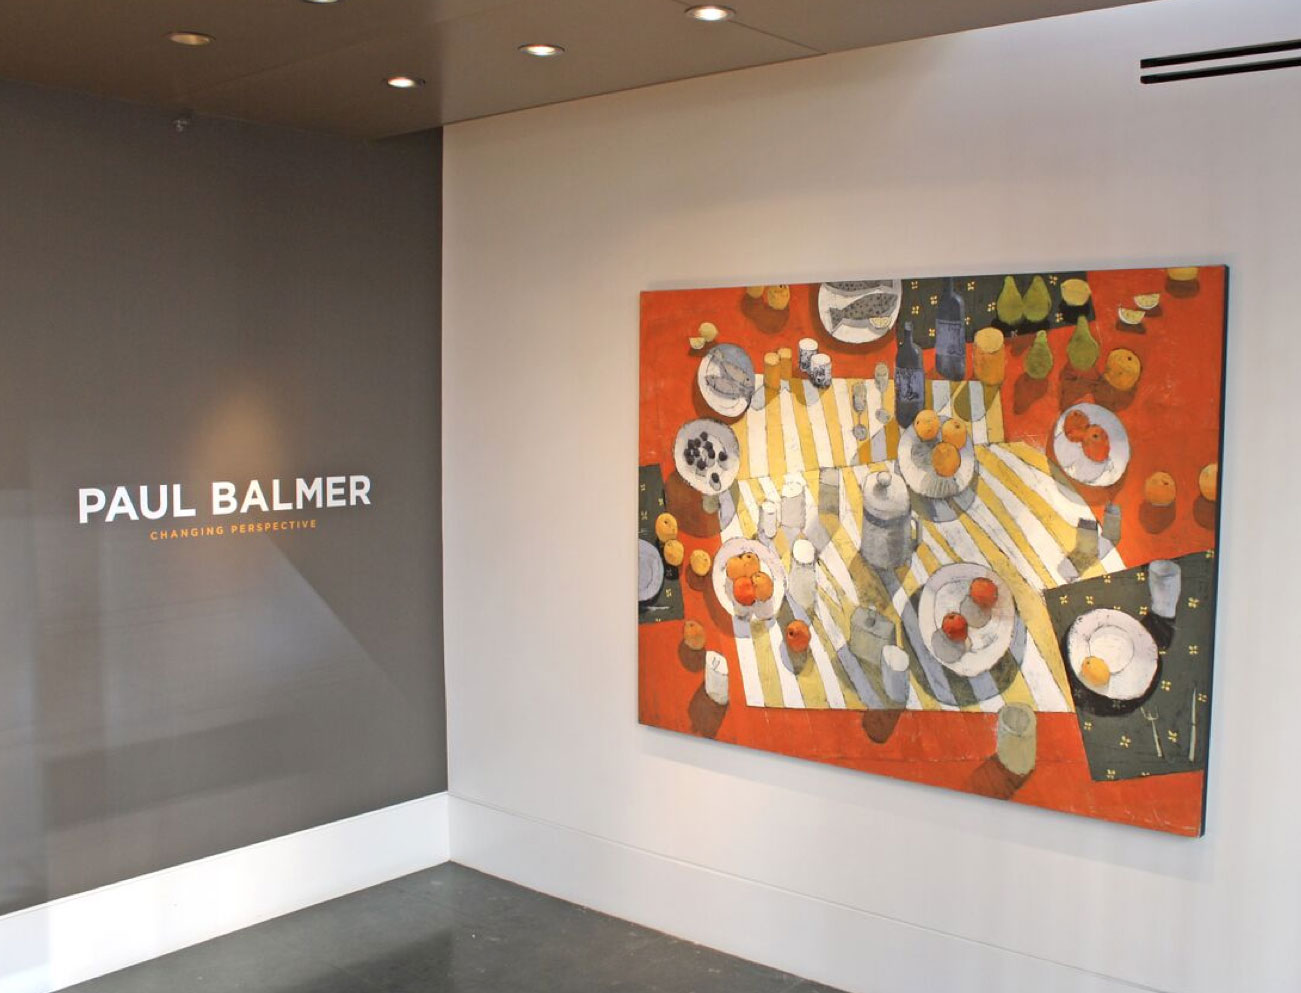 Caldwell Snyder Gallery